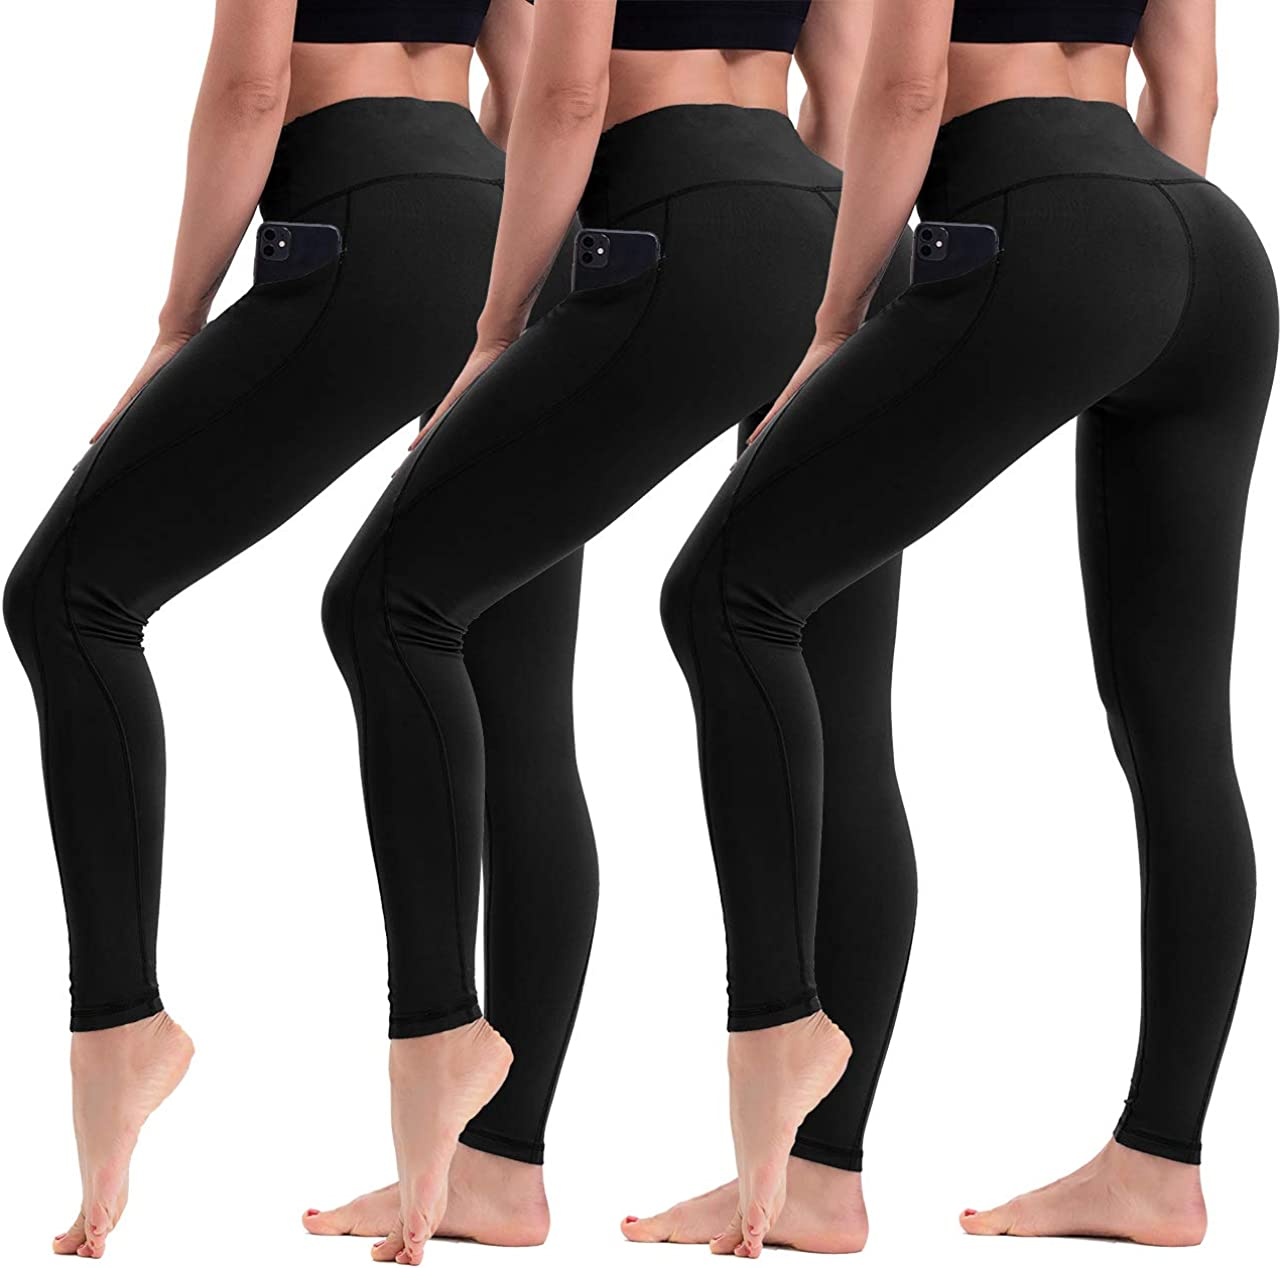 - Non See Through Yoga Pants for Workout 3 Pairs HLTPRO High Waist Yoga Leggings with Pockets for Women Running